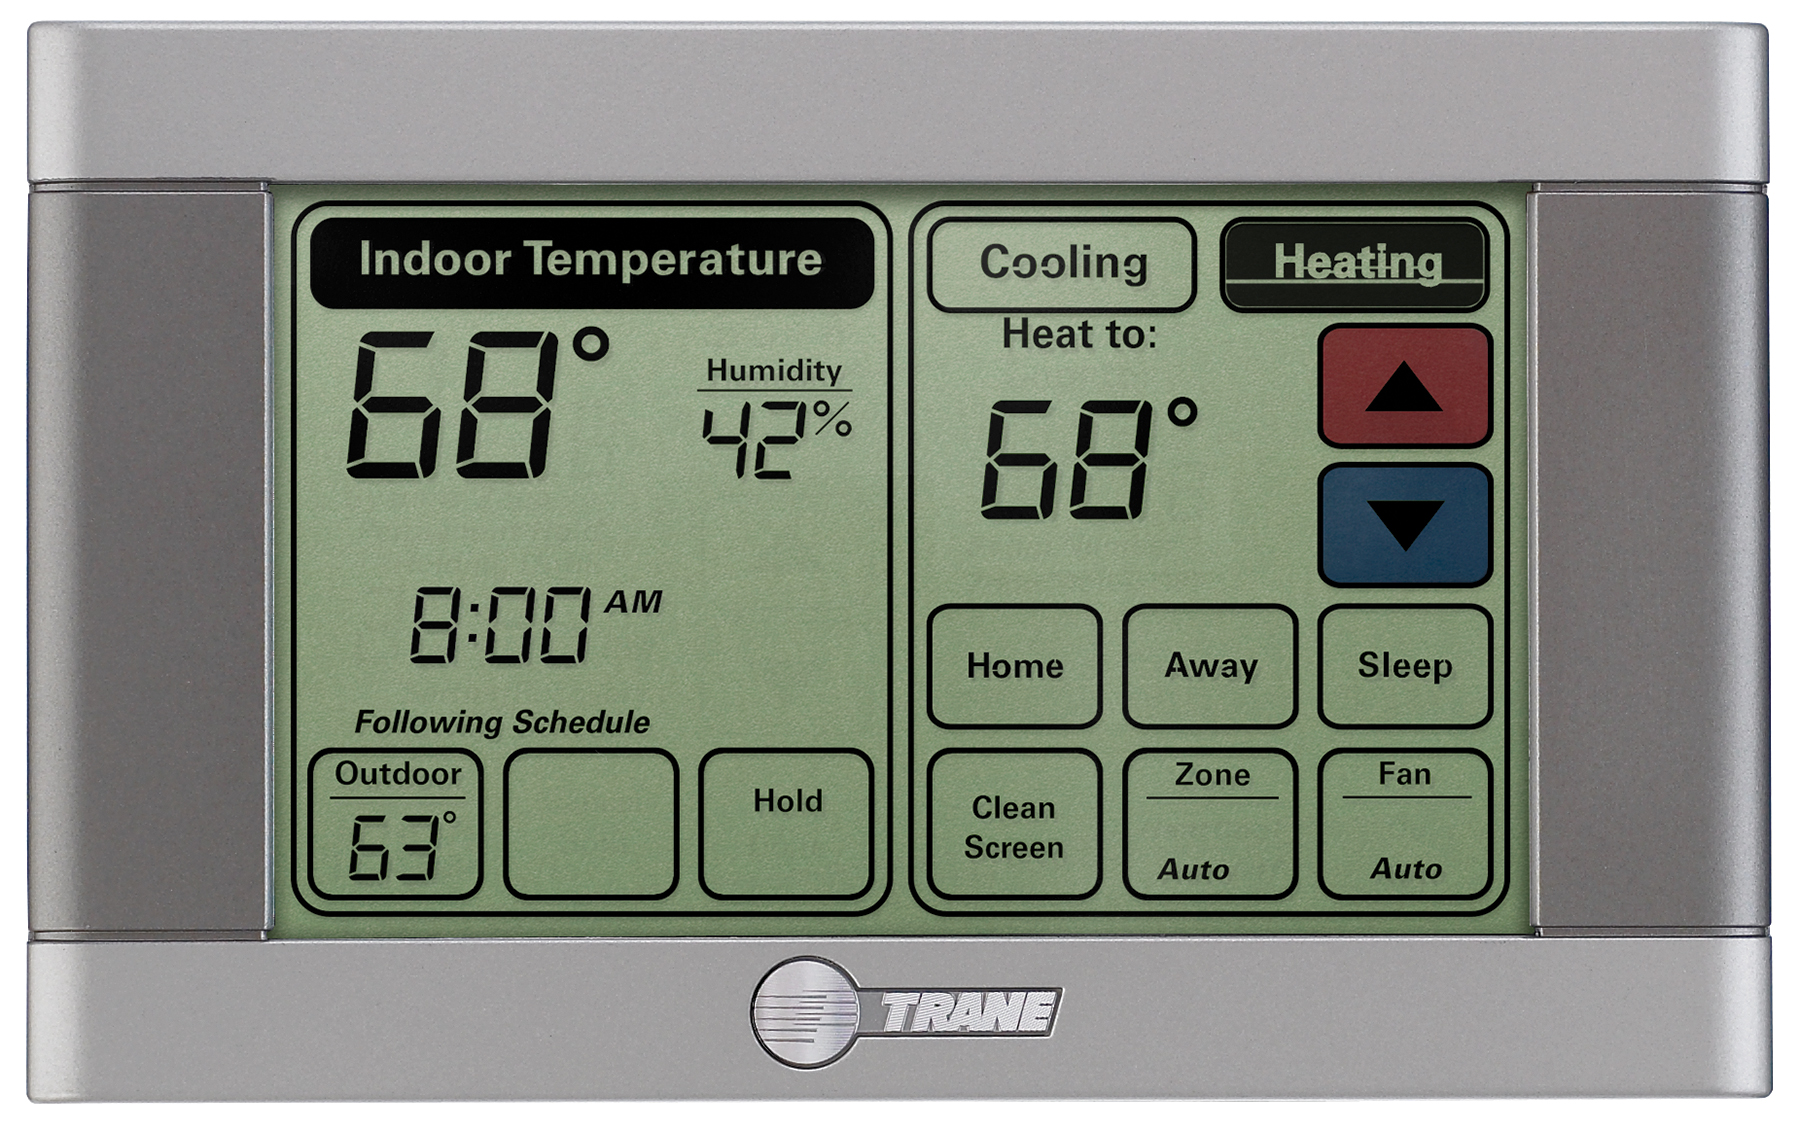 Taco Zone Valves Installation Instructions further Honeywell Rth7400d Programmable Thermostat Owners Guide furthermore Thermostatic Mixing Valve also Product also Honeywell Ct3600 Ct3697 Programmable Thermostat Owners Guide. on honeywell thermostat installation manual